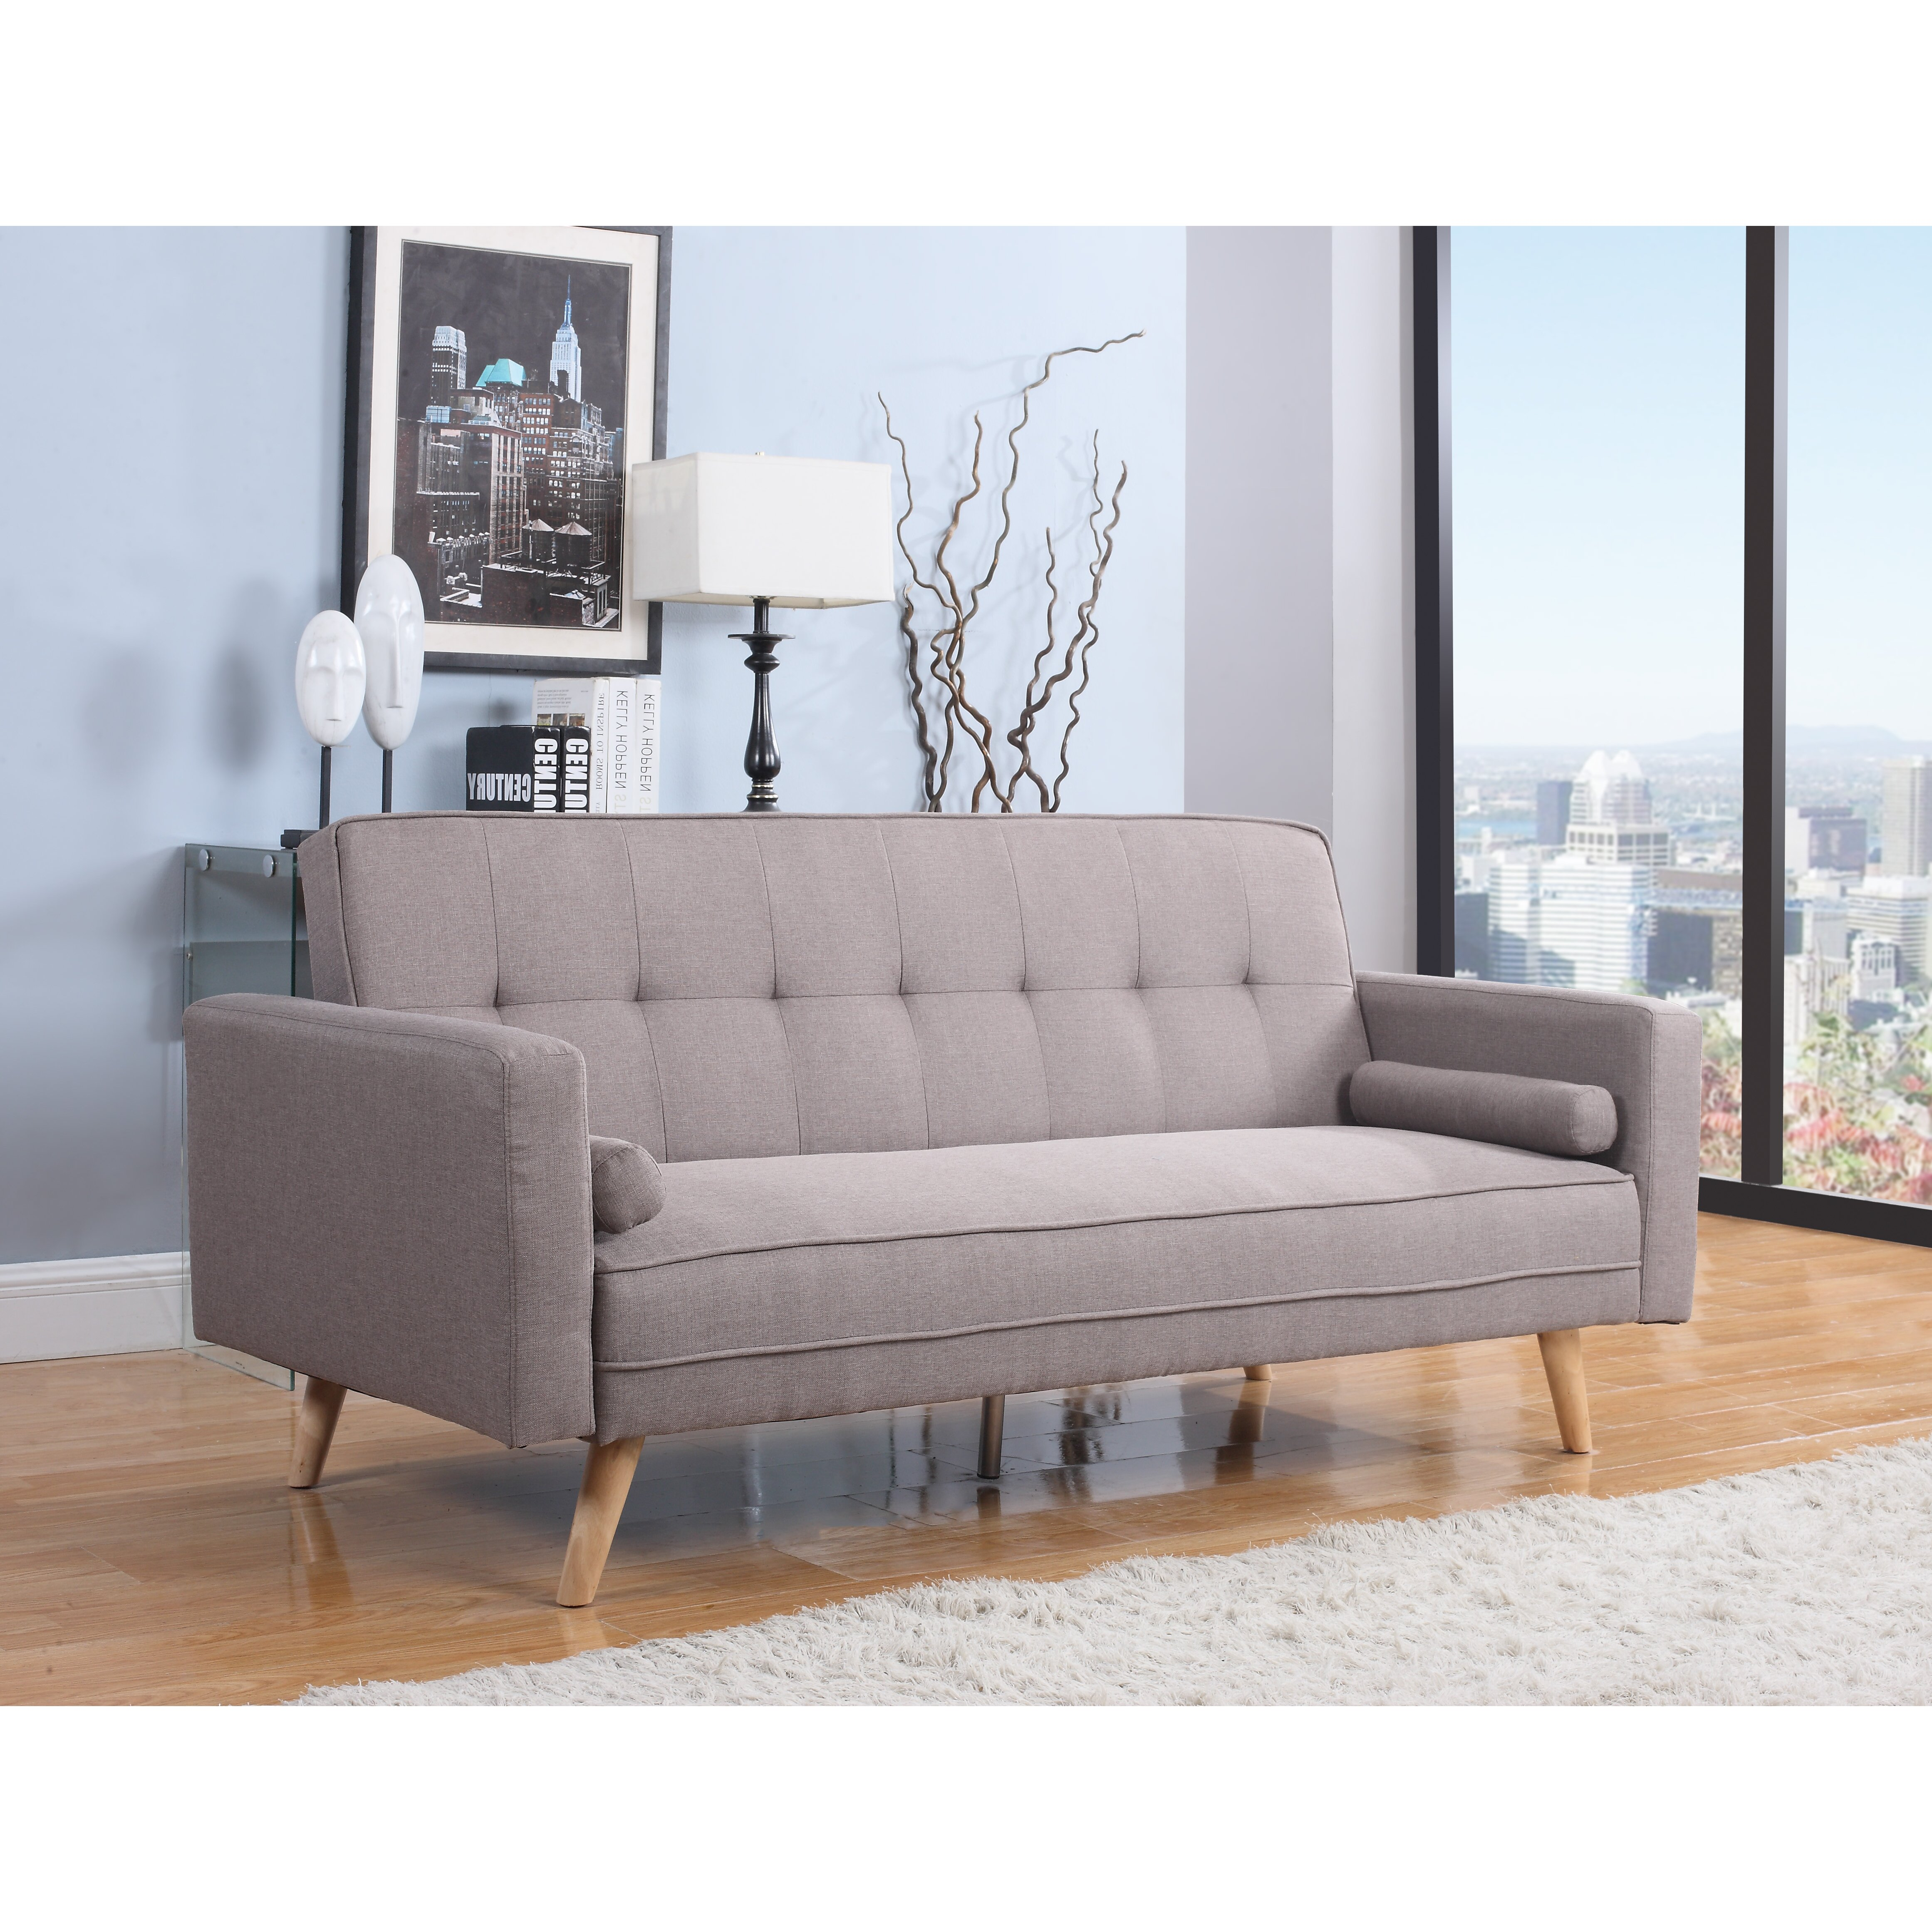 Home Amp Haus Ethan 3 Seater Sofa Bed Amp Reviews Wayfair Co Uk